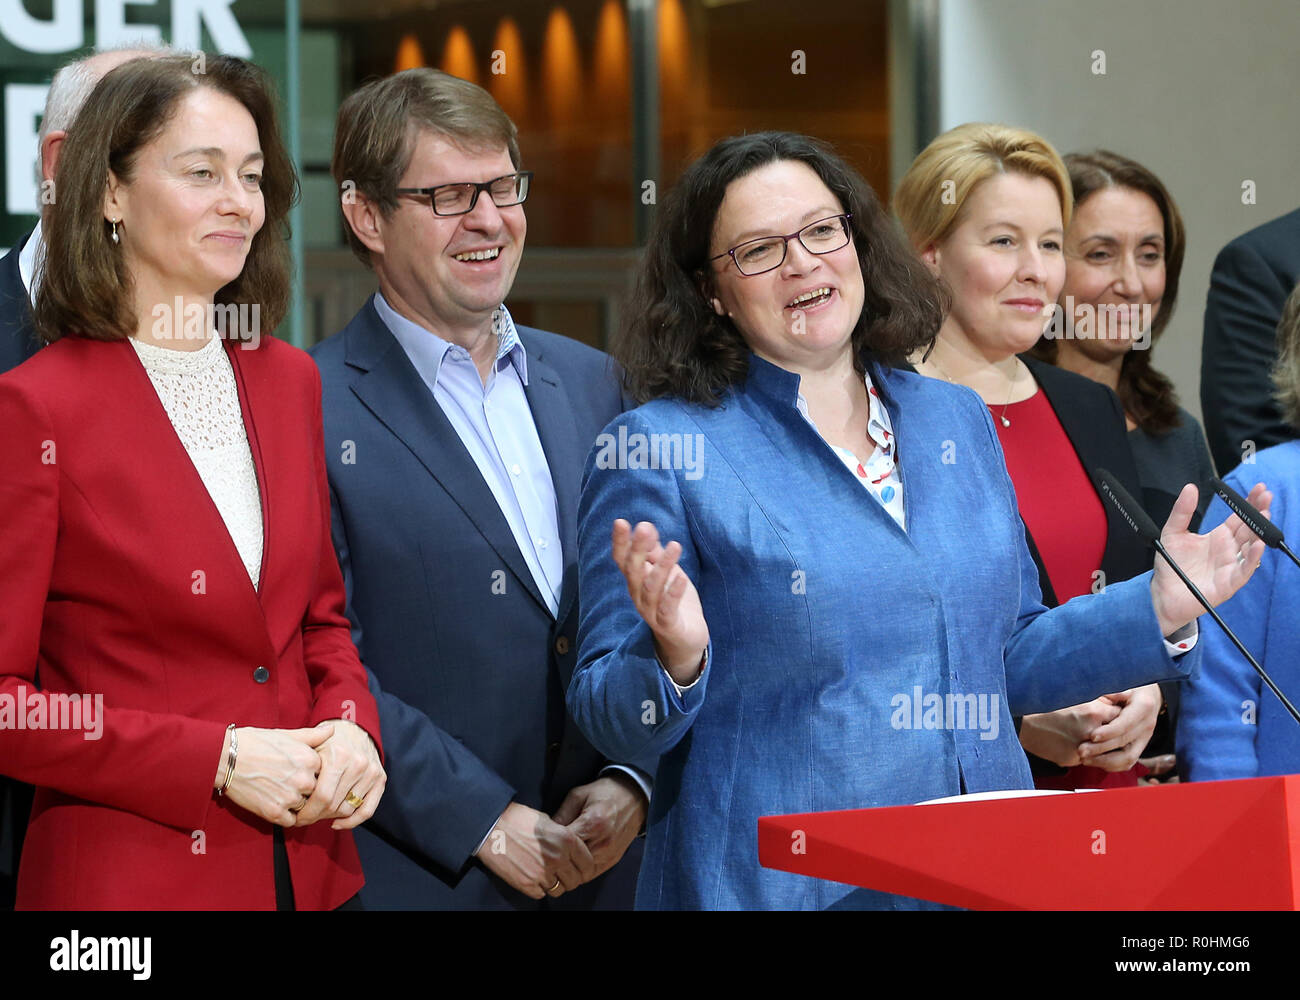 Berlin, Germany. 05th Nov, 2018. Andrea Nahles (M), chairwoman of the SPD, made a statement in the presence of the members of the executive committee after the meeting of the SPD executive committee at a press conference in the Willy Brandt House at the end of the closed conference of the SPD federal leadership. L-r: Katarina Barley, Federal Minister of Justice, Ralf Stegner, Deputy Chairman, Andrea Nahles, Chairman, Franziska Giffey, Federal Minister of Family Affairs, Aydan Özoguz, Member of the SPD Executive Committee. Credit: Wolfgang Kumm/dpa/Alamy Live News - Stock Image